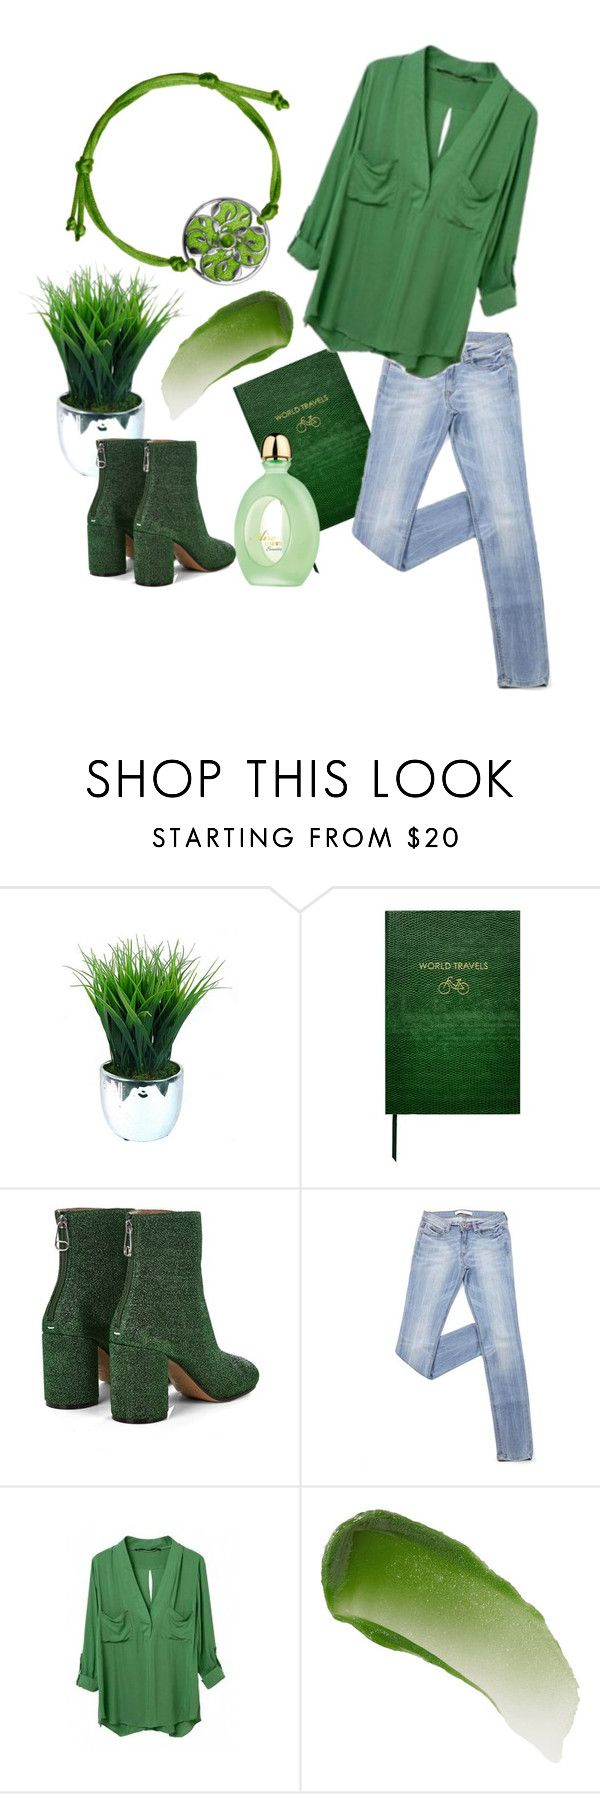 """Green"" by marina-labutina on Polyvore featuring Sloane Stationery, Maison Margiela, WithChic, Loewe и Lipstick Queen"